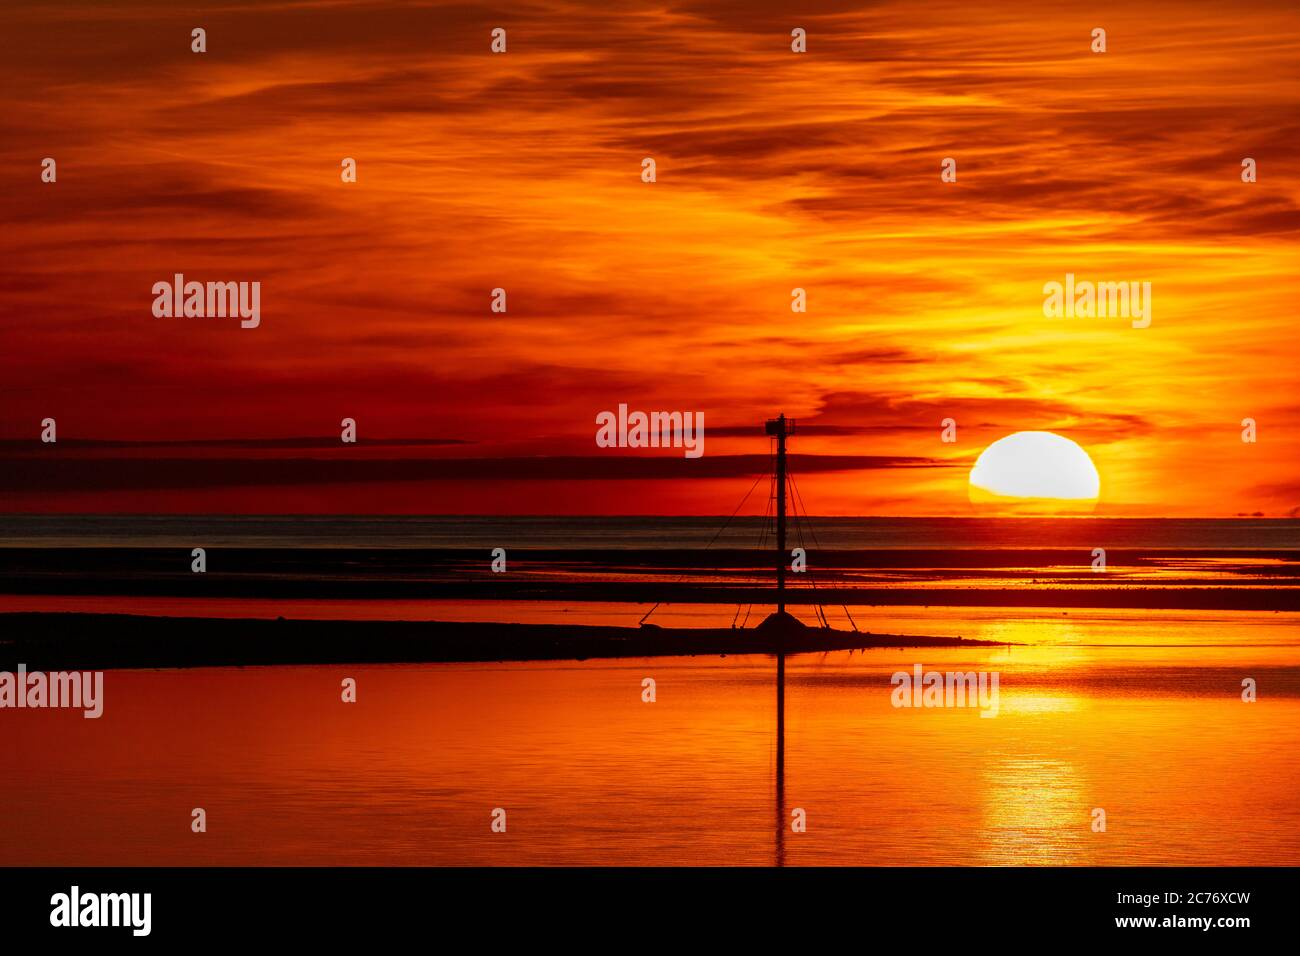 Sunset over the North Wales coast from Deganwy Stock Photo